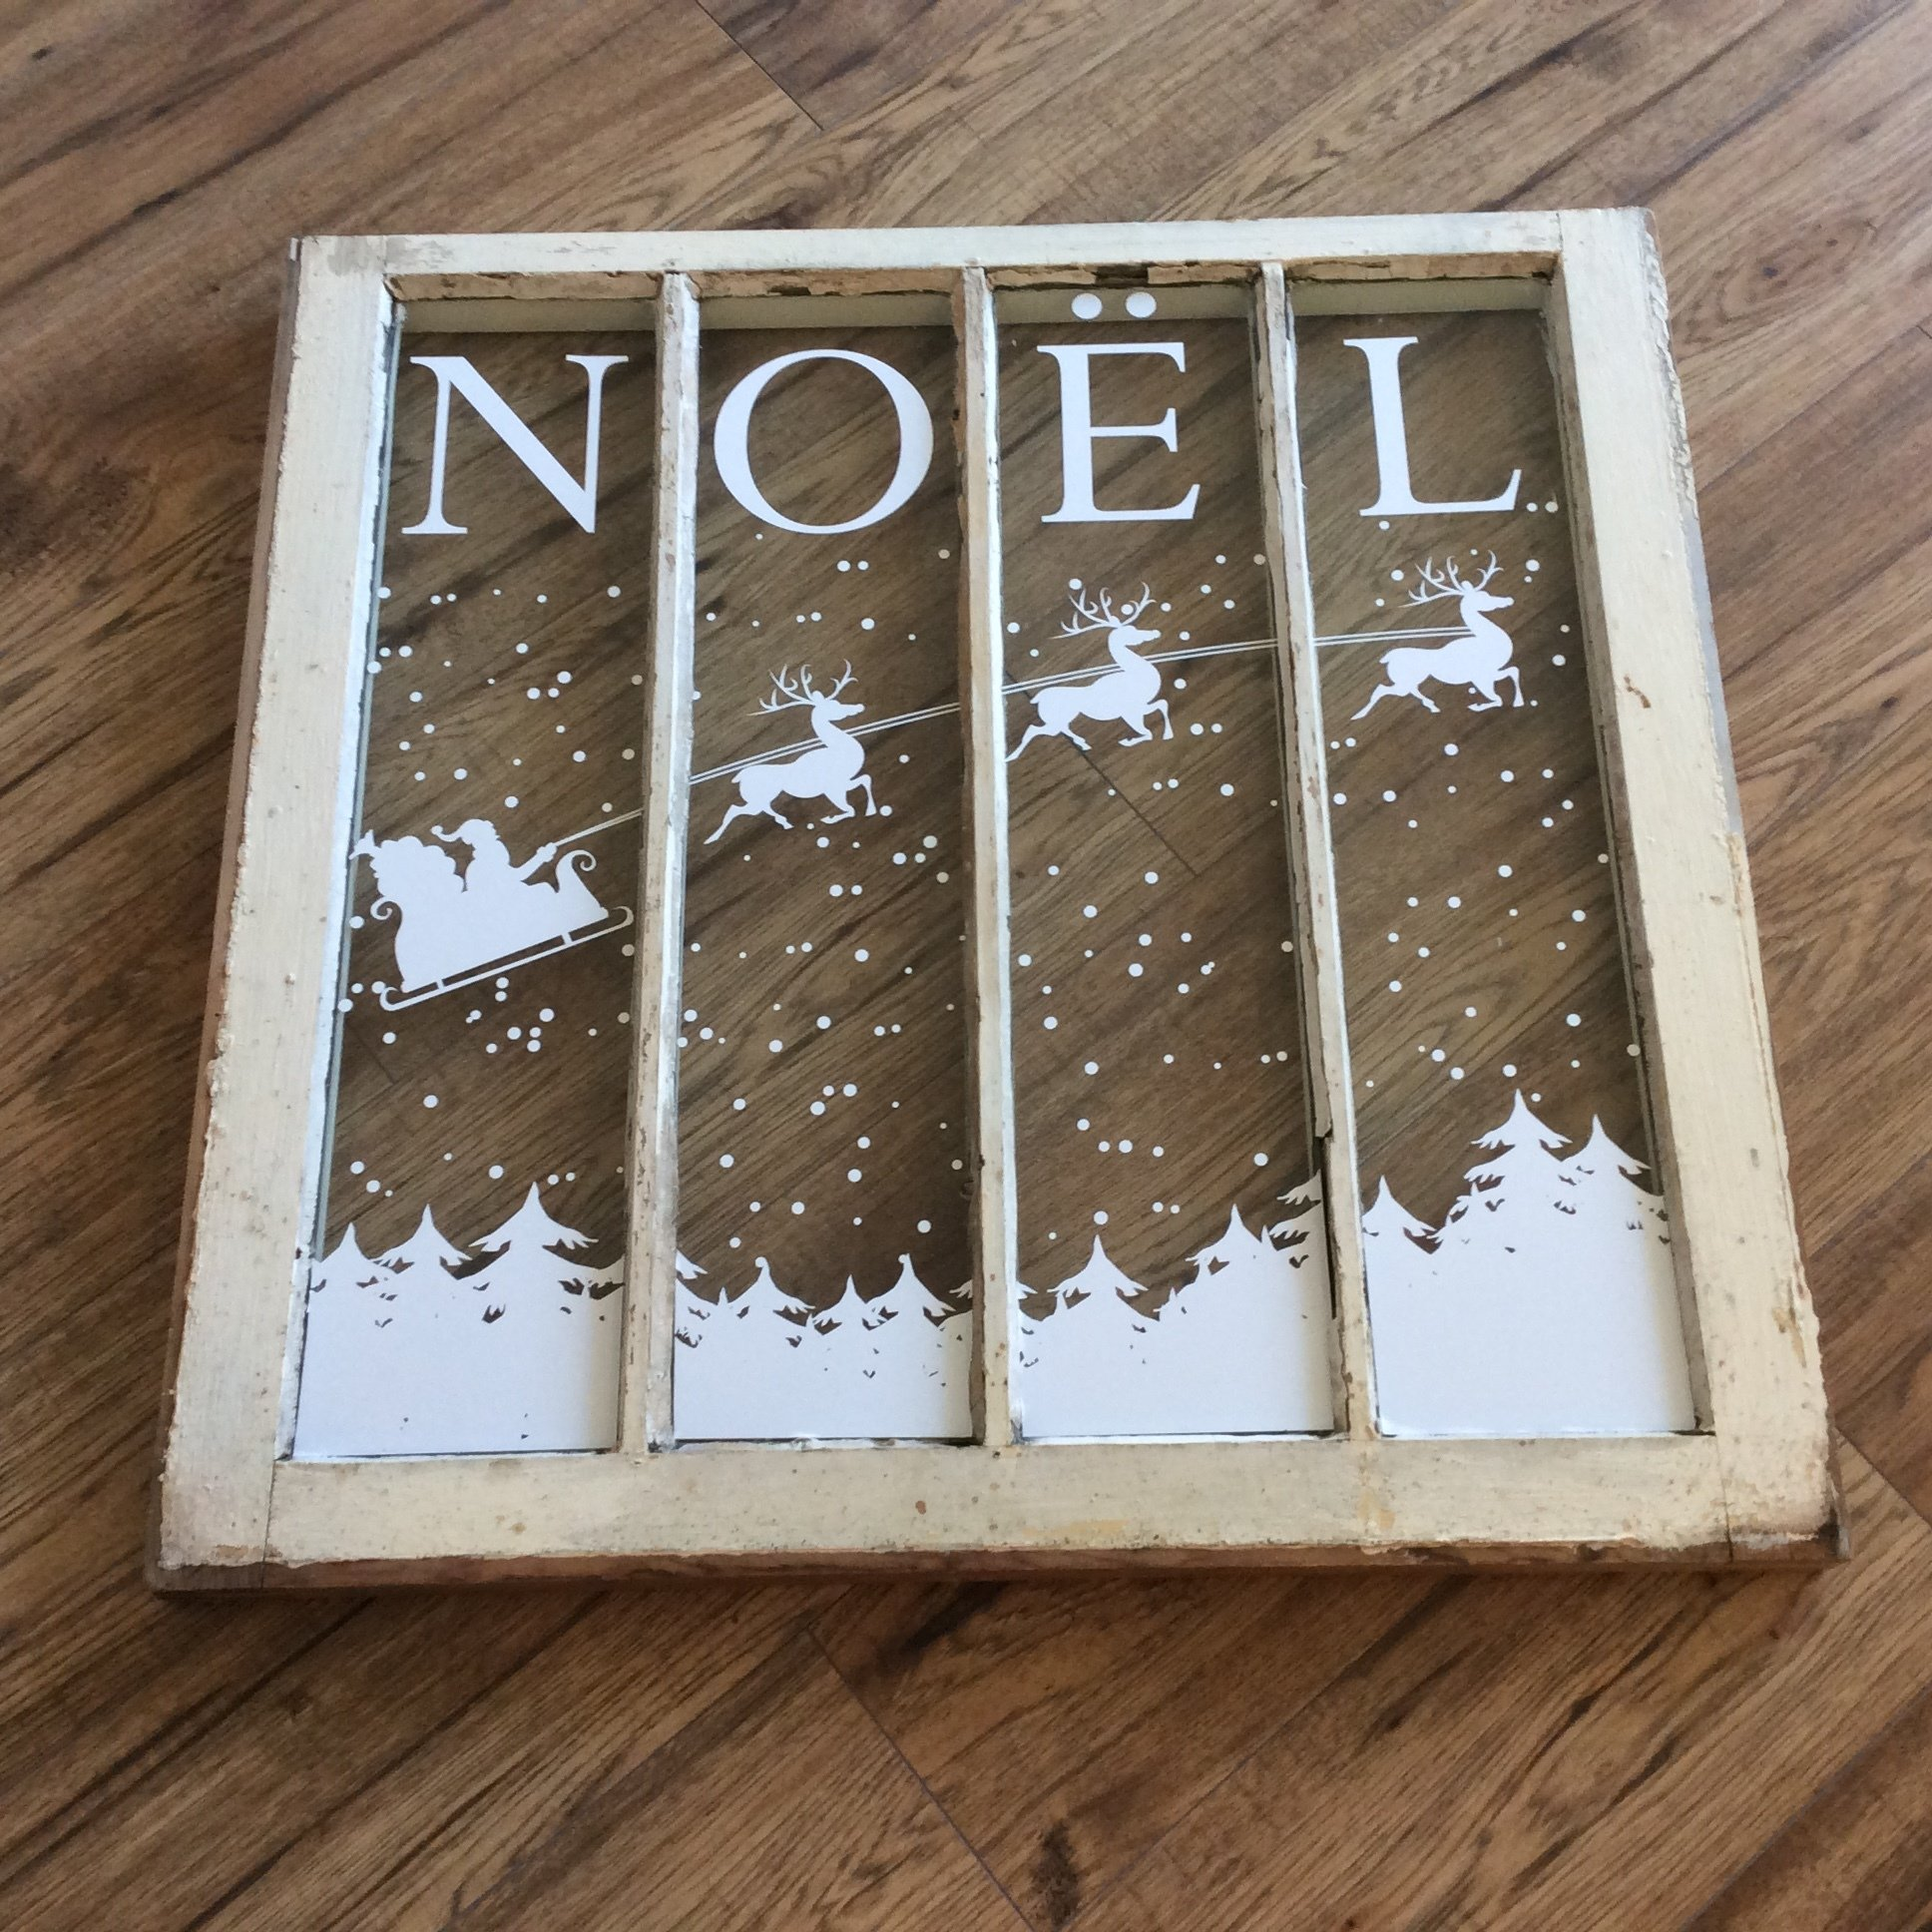 Noel - decal only 5002